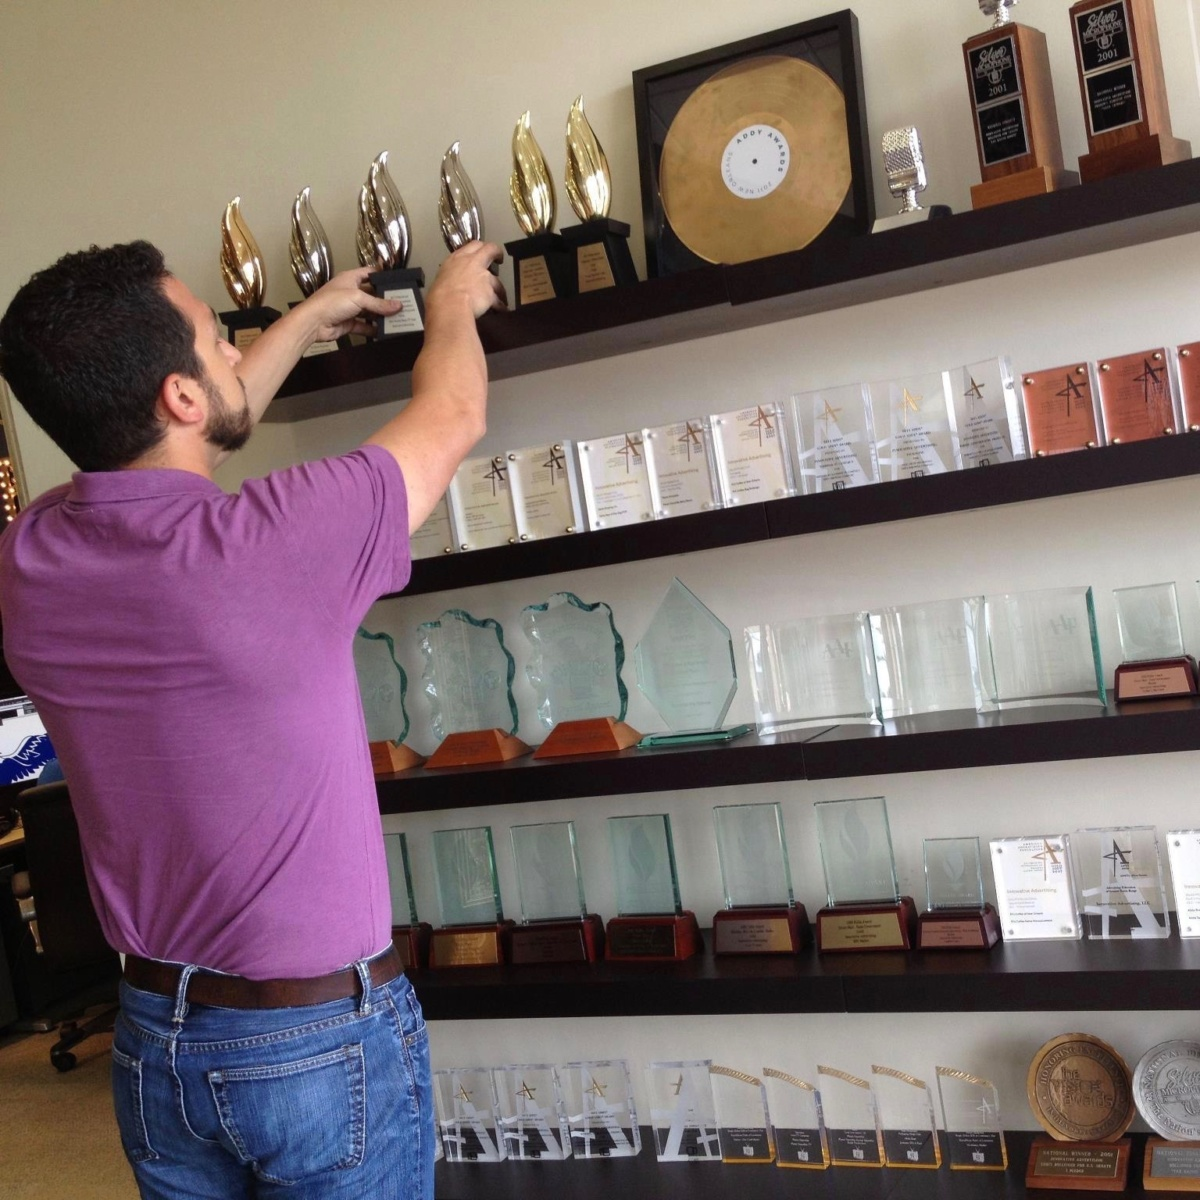 Jeremy stacks up the latest awards